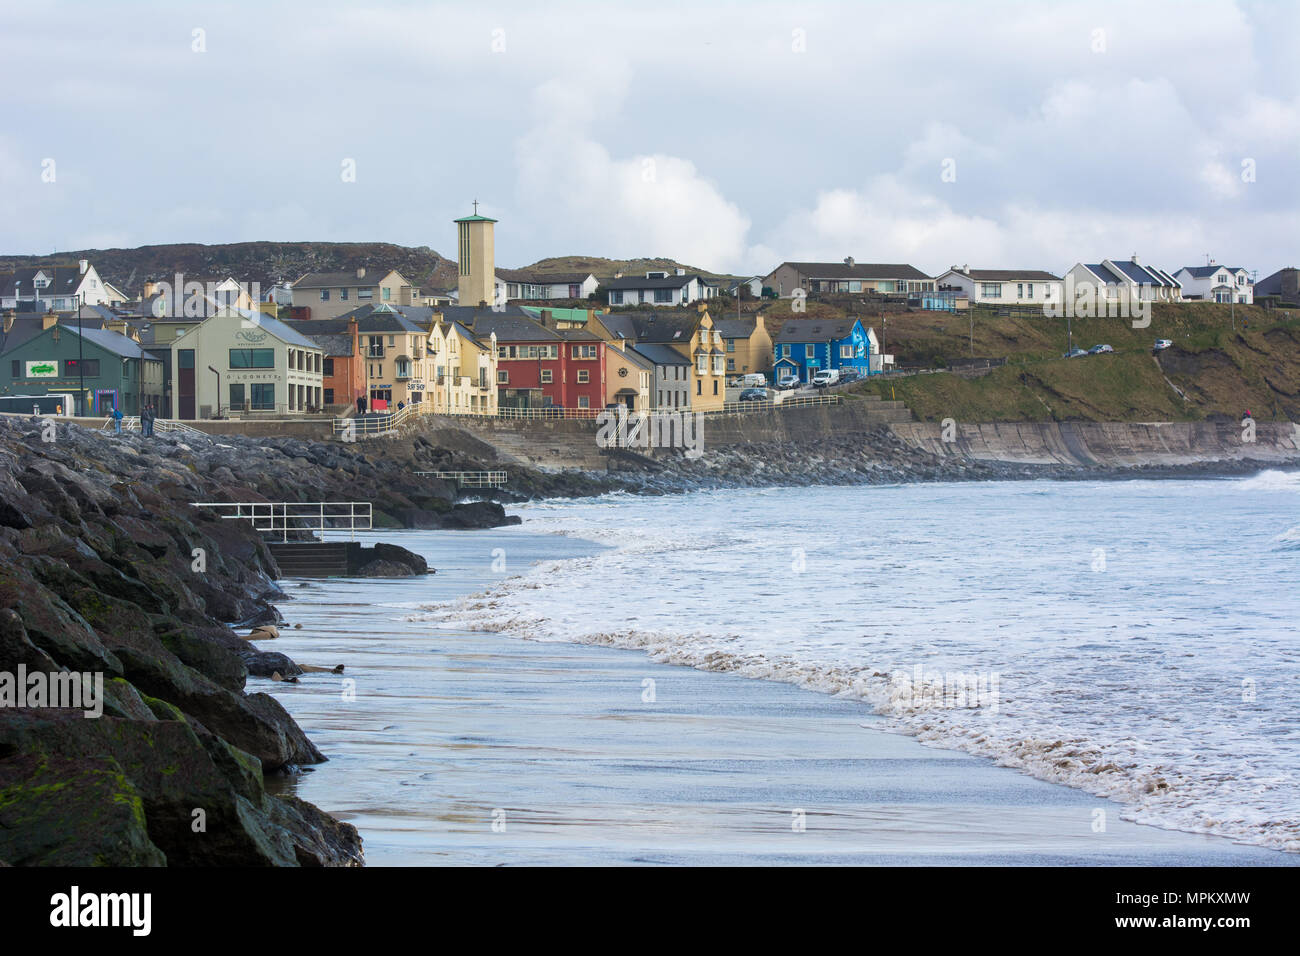 Lahinch beach and village along the Wild Atlantic Way in County Clare on the west coast of Ireland - Stock Image